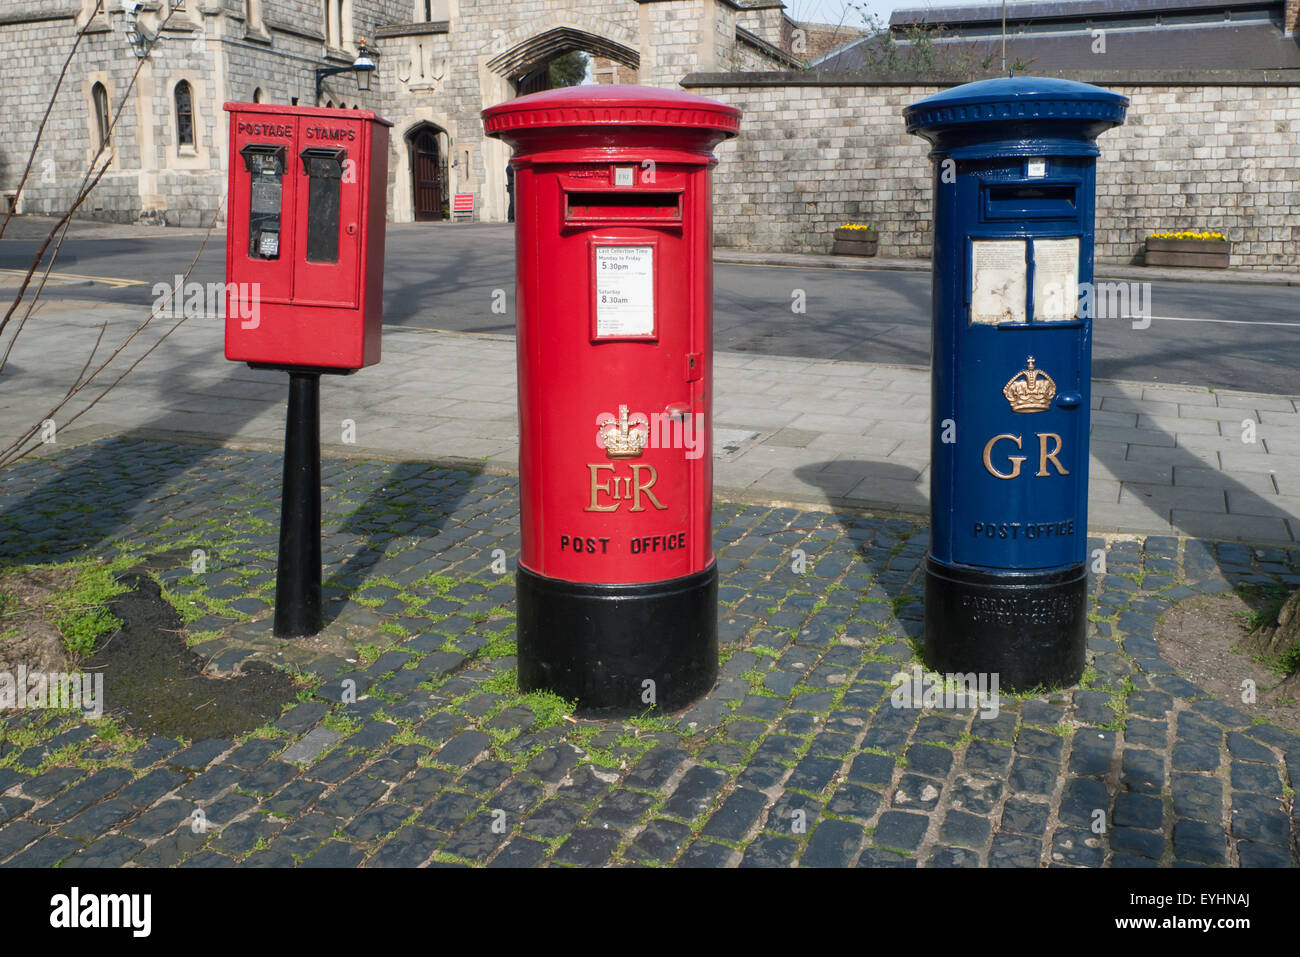 Windsor, England. Red postage stamp machine and post box marked EIIR, old blue airmail pillar box marked GR, Coronation Stock Photo